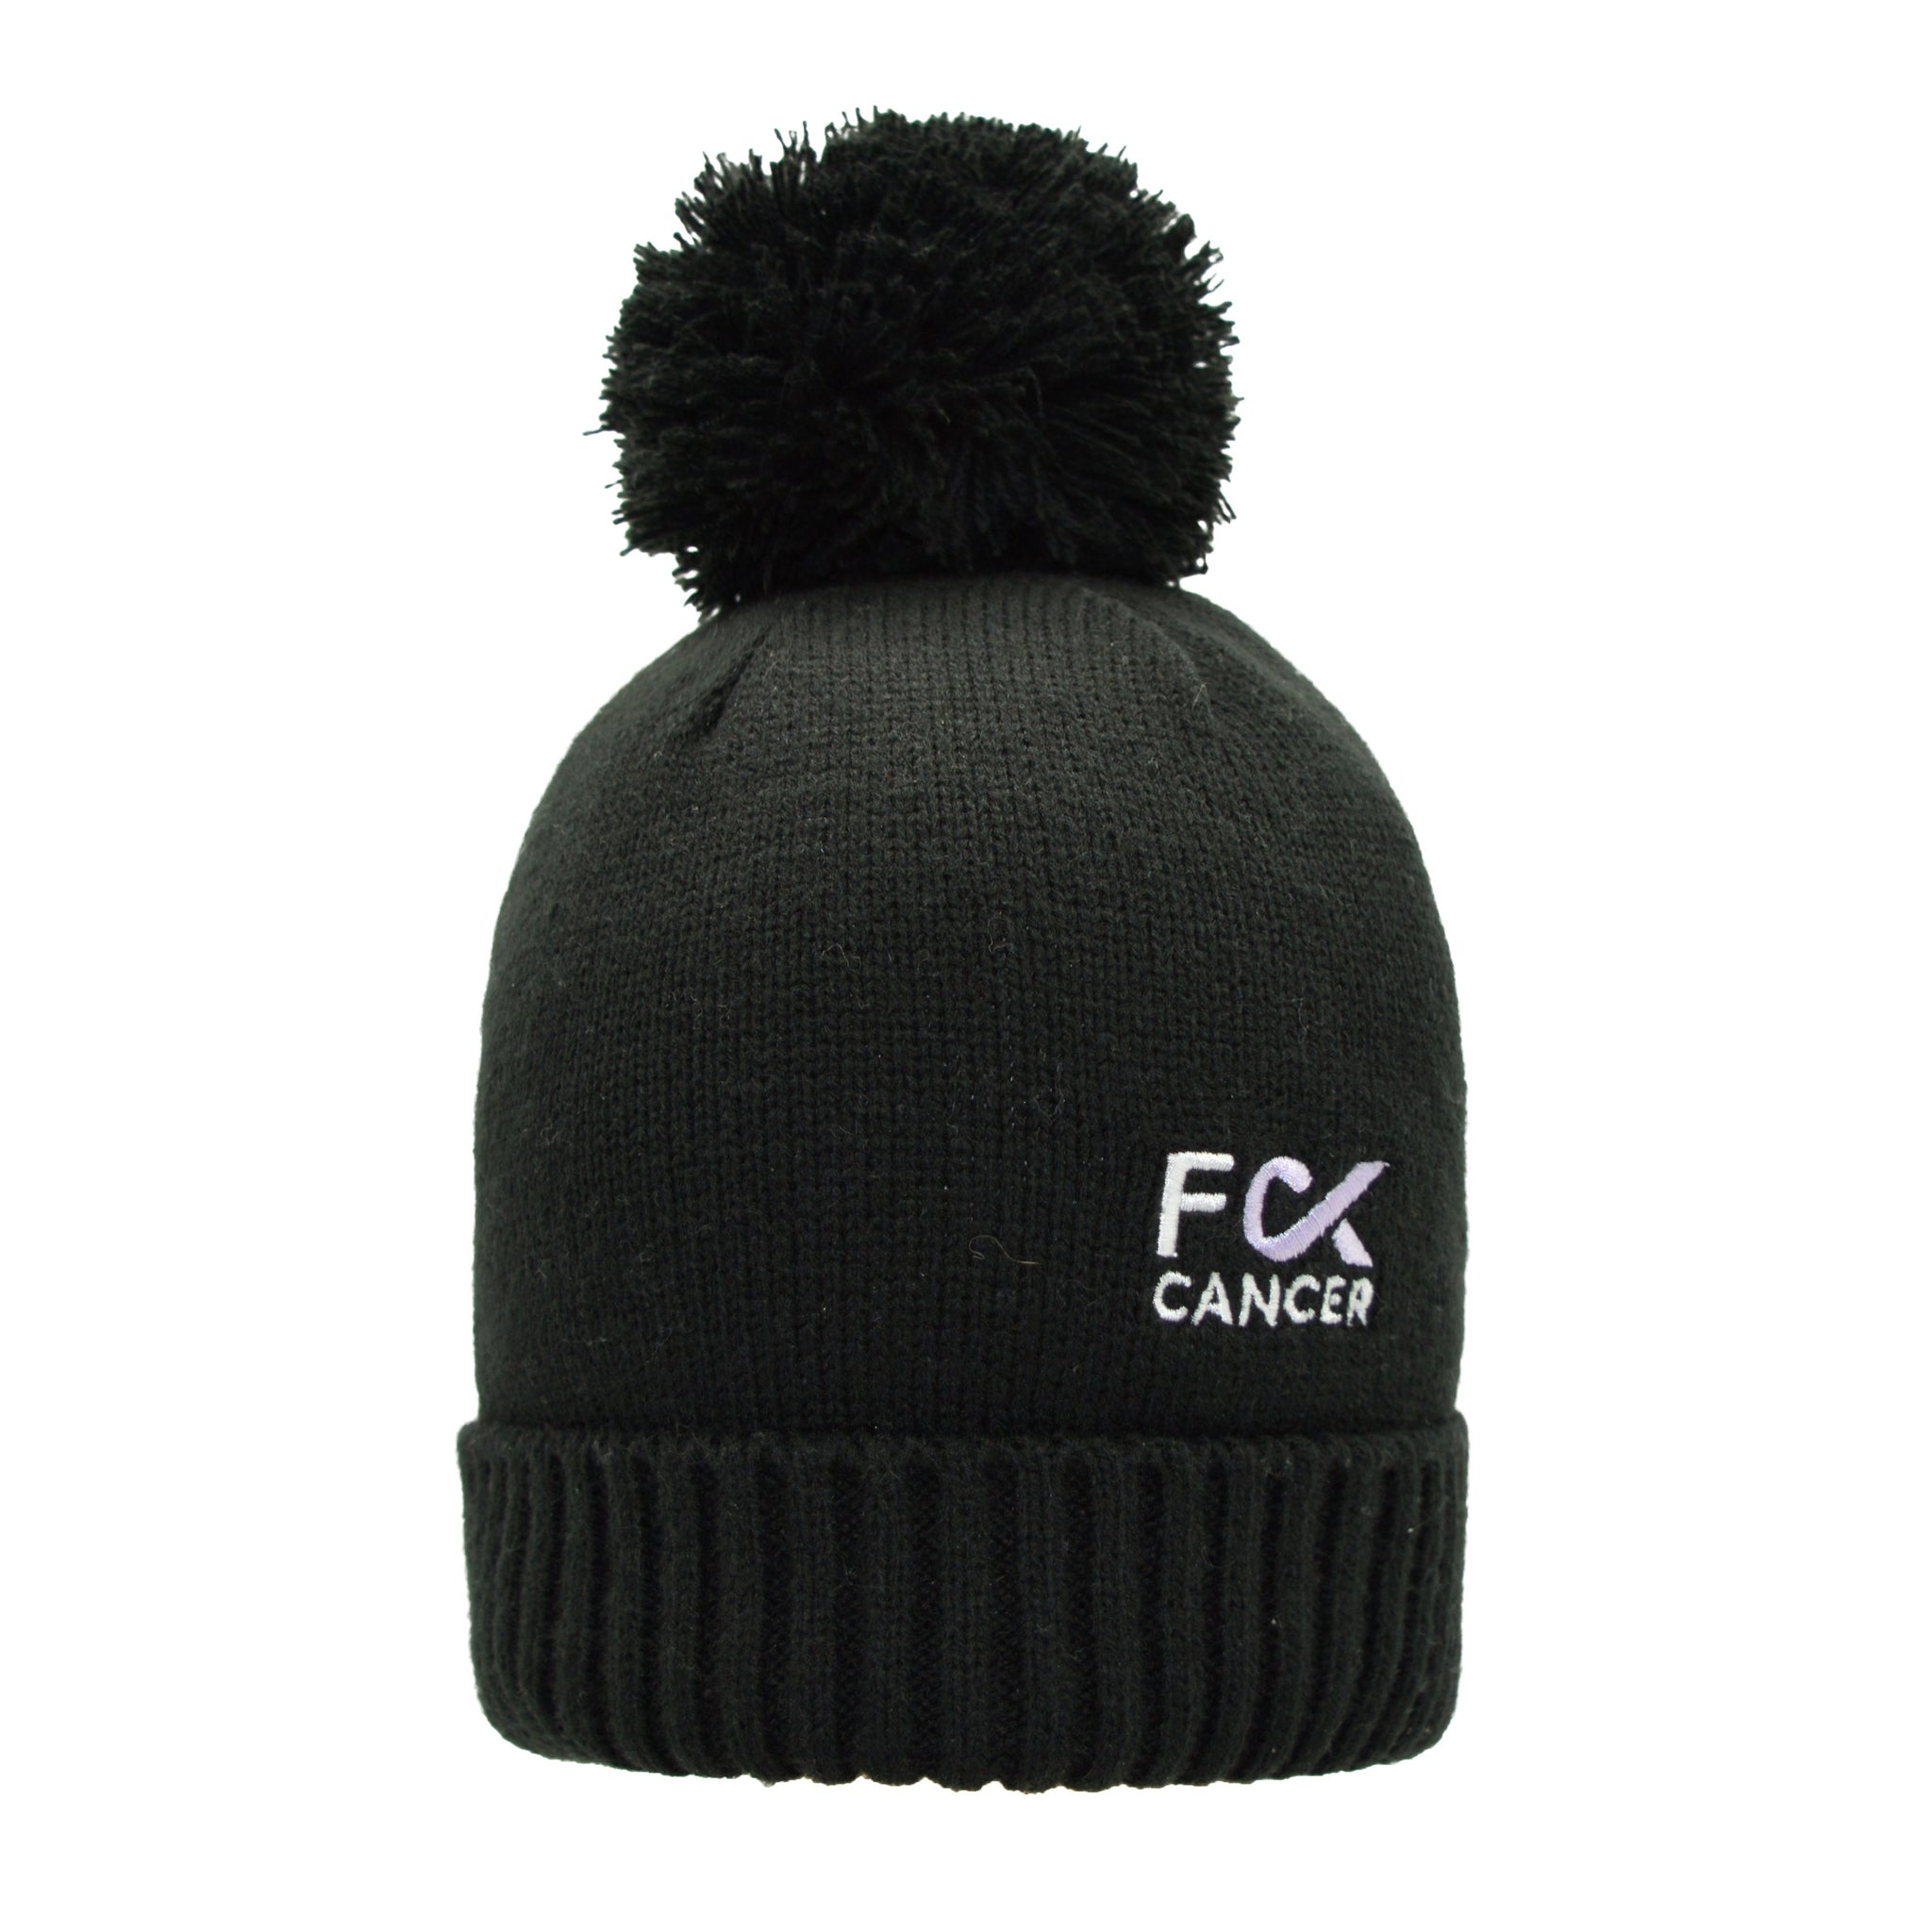 F Cancer x Pudus Toque Hat | Black